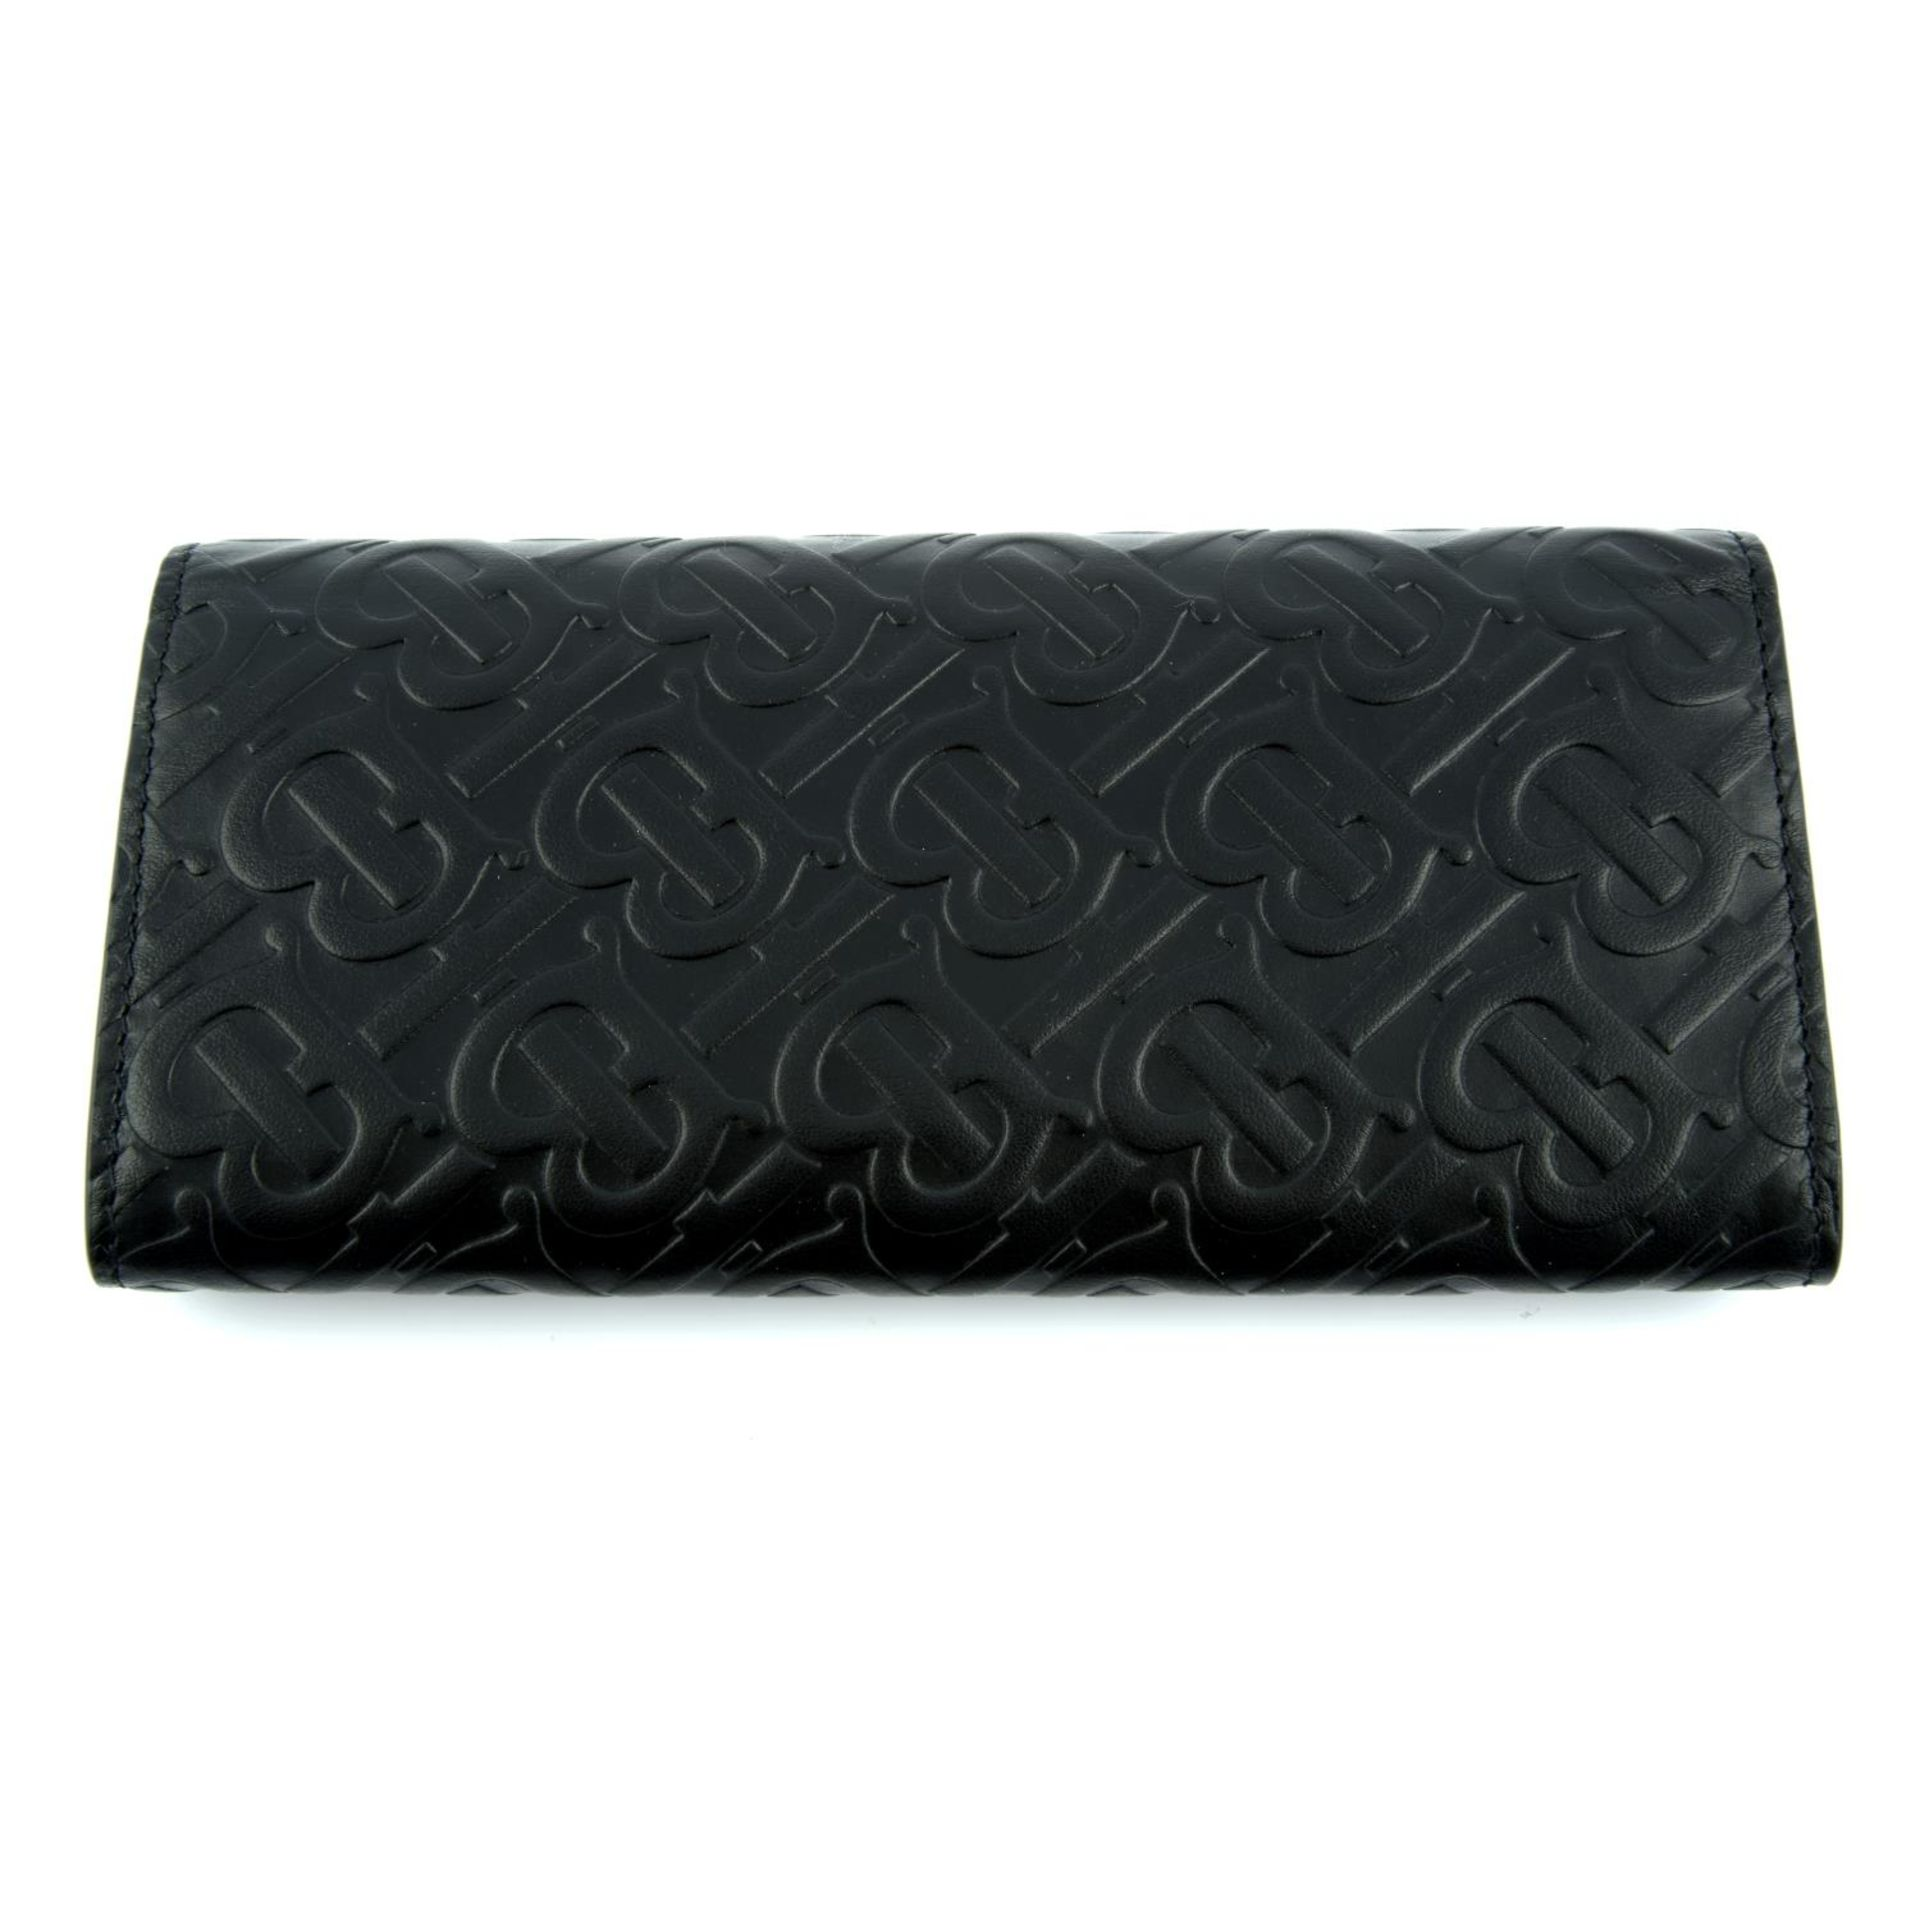 BURBERRY - a black leather monogram continental wallet. - Image 2 of 4